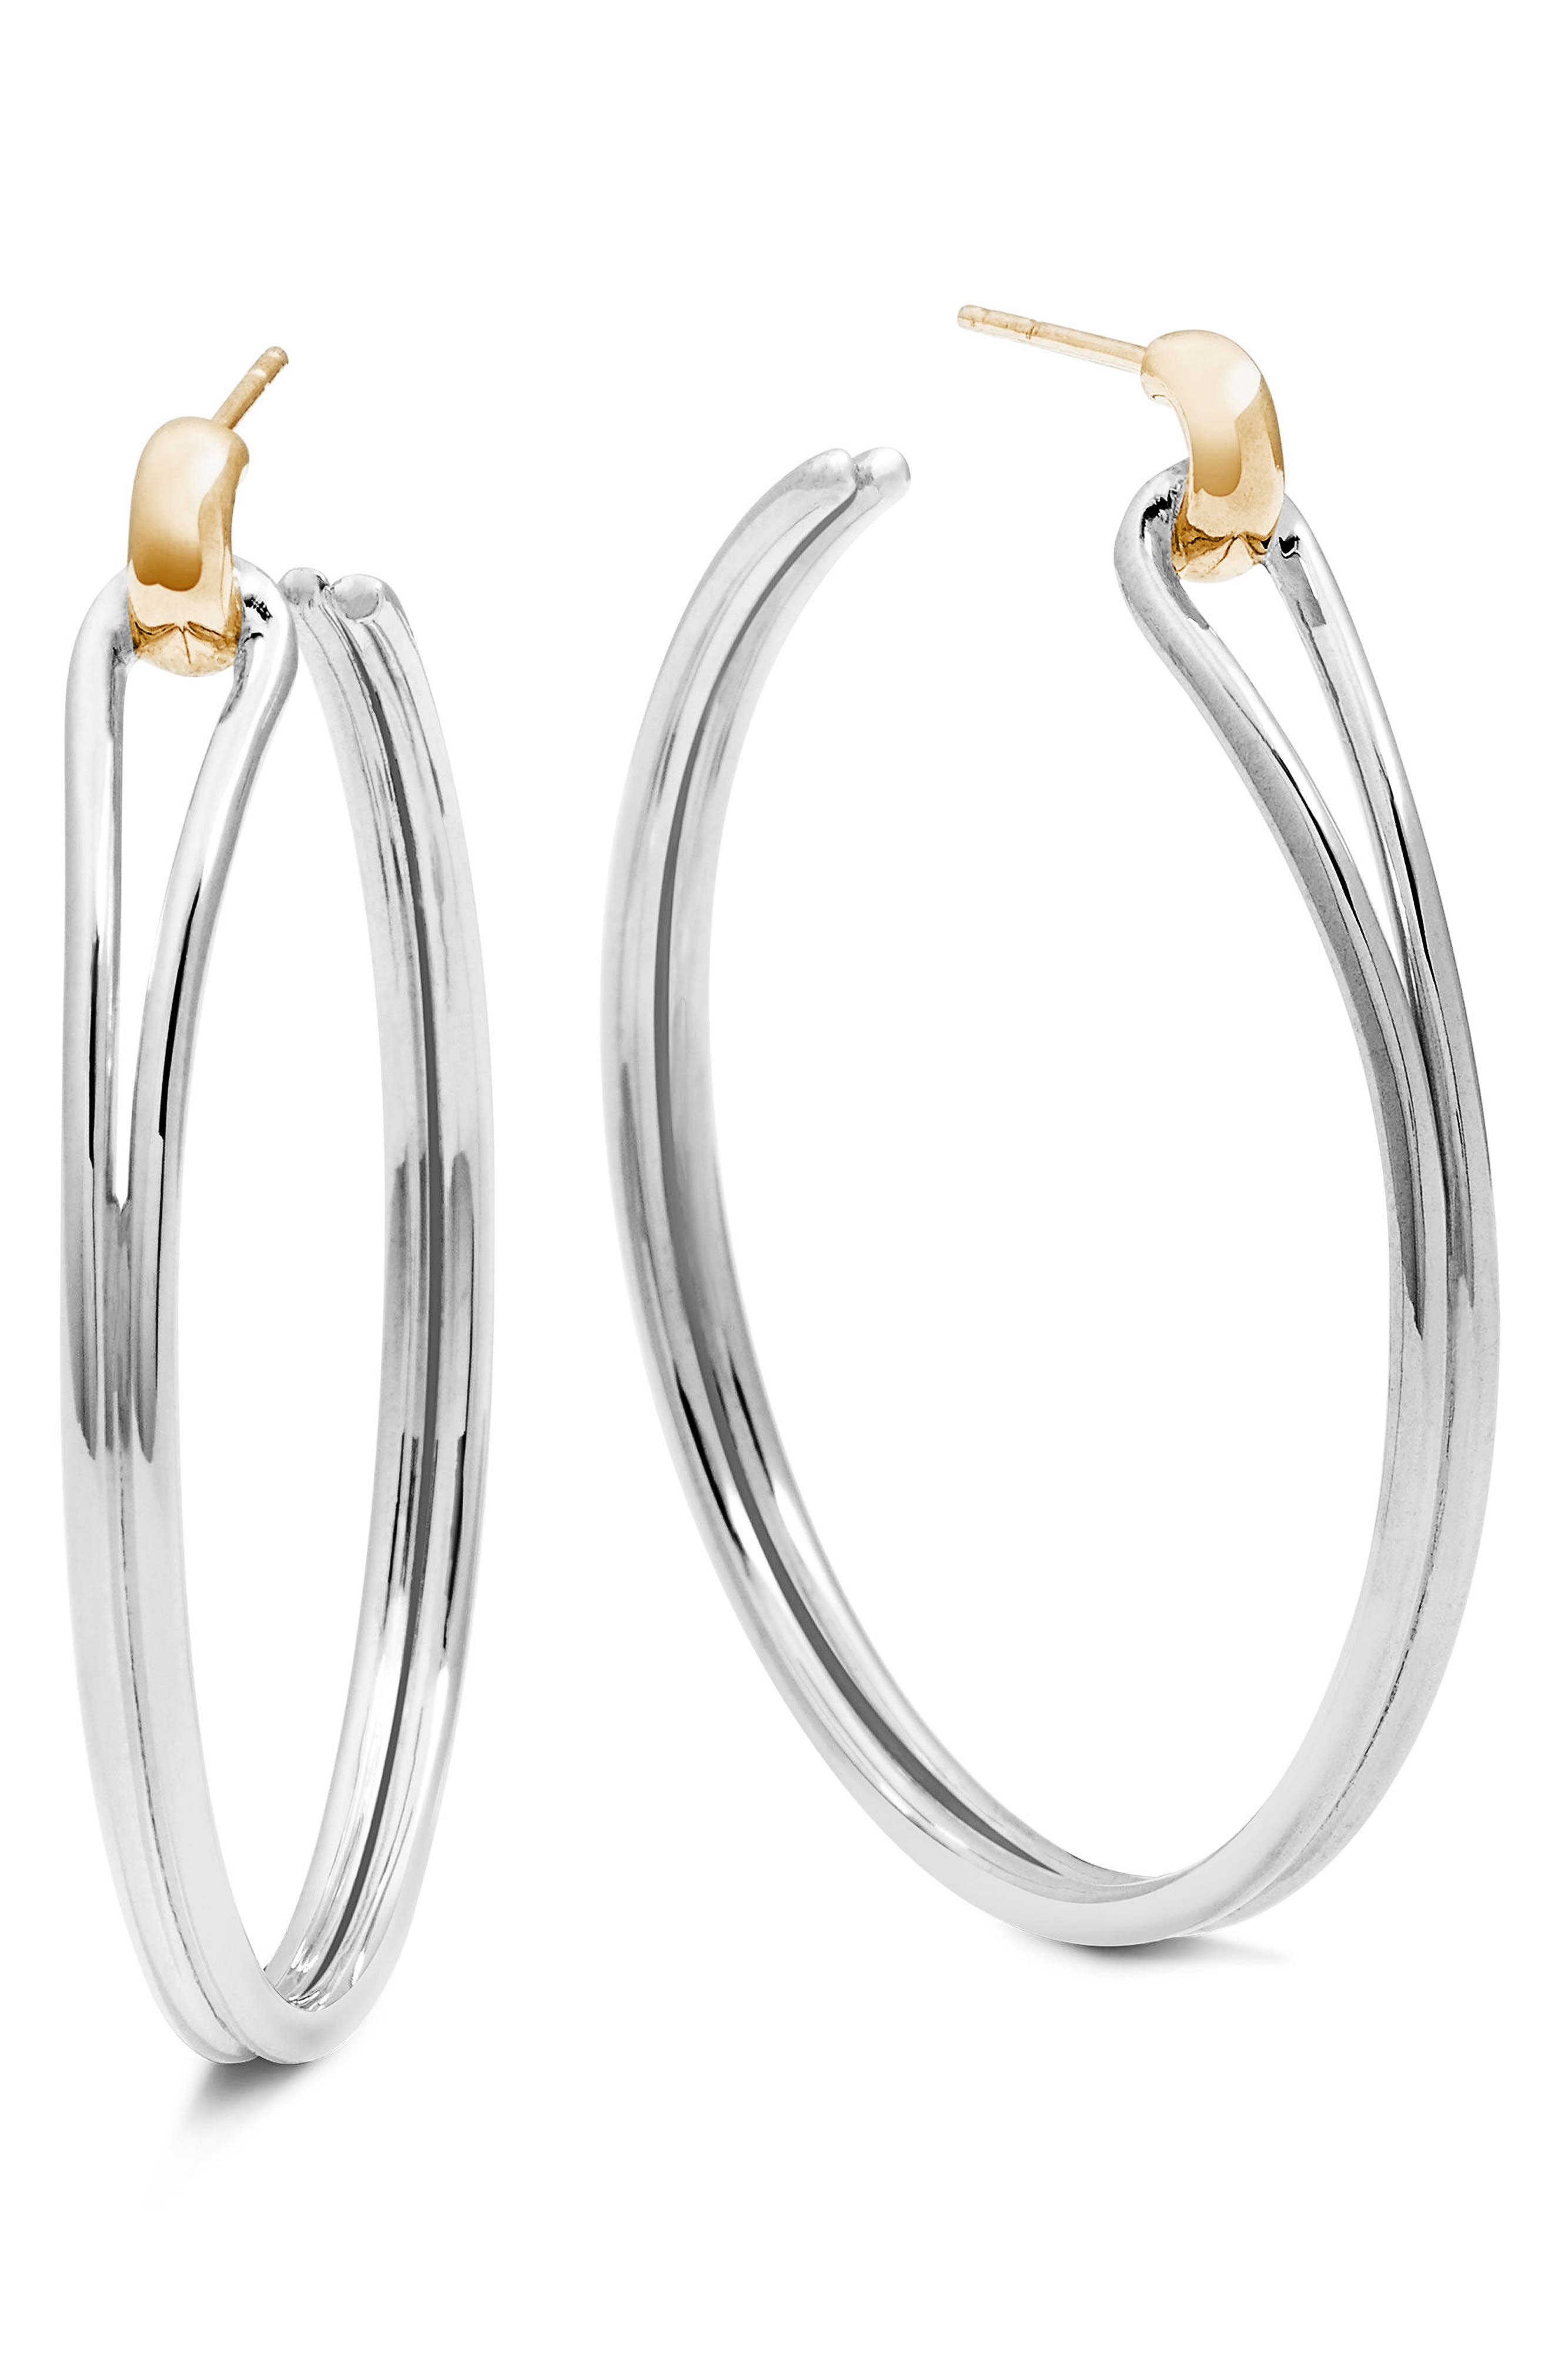 Lug Hoop Earrings,                             Main thumbnail 1, color,                             Silver